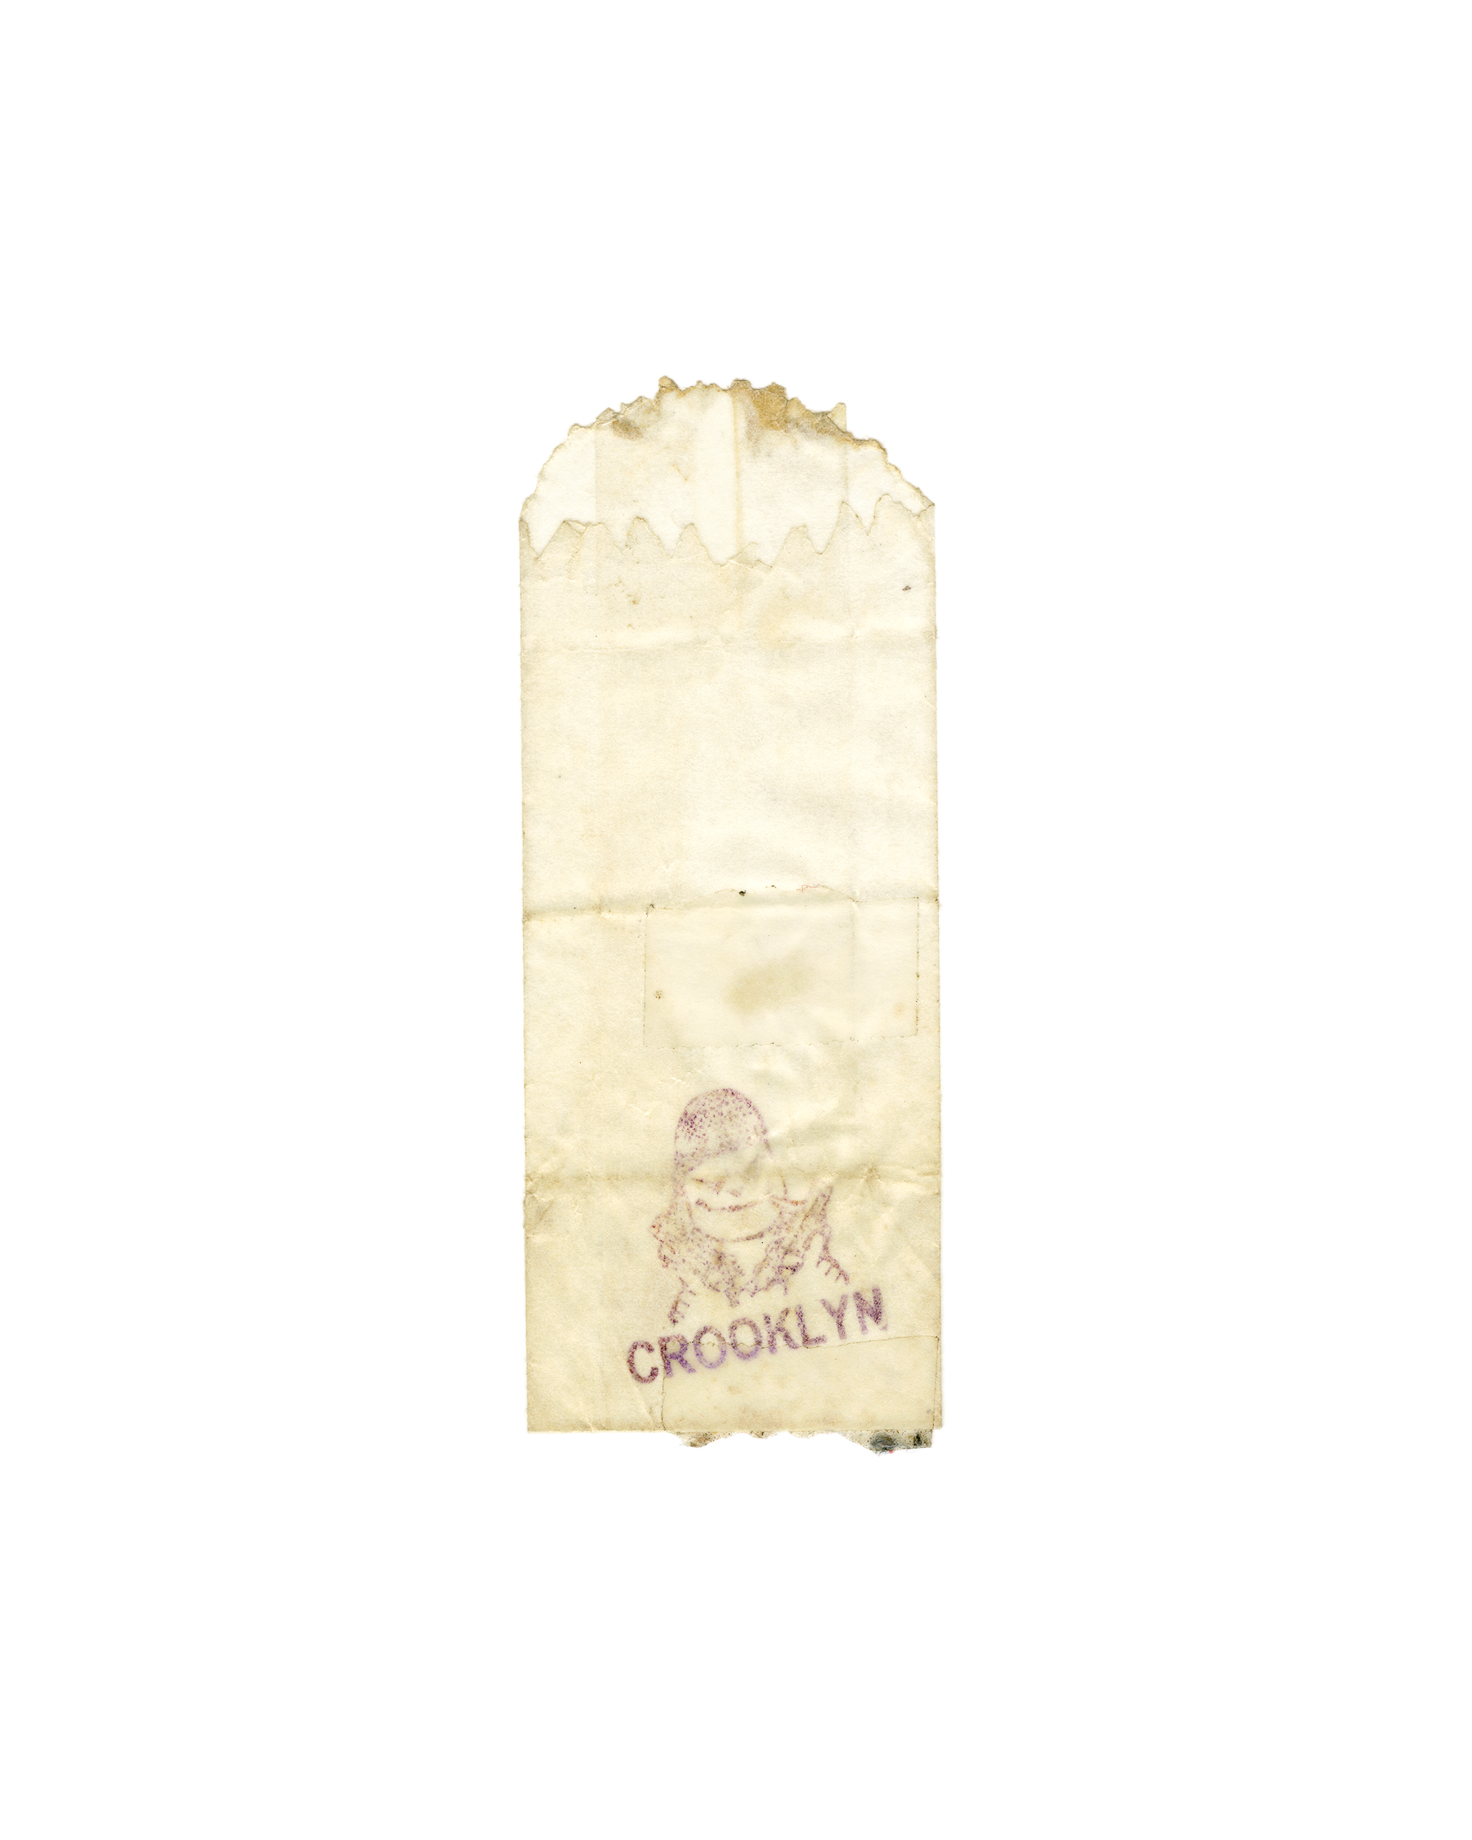 FramedBaggies_009_Crooklyn_8x10_Clean